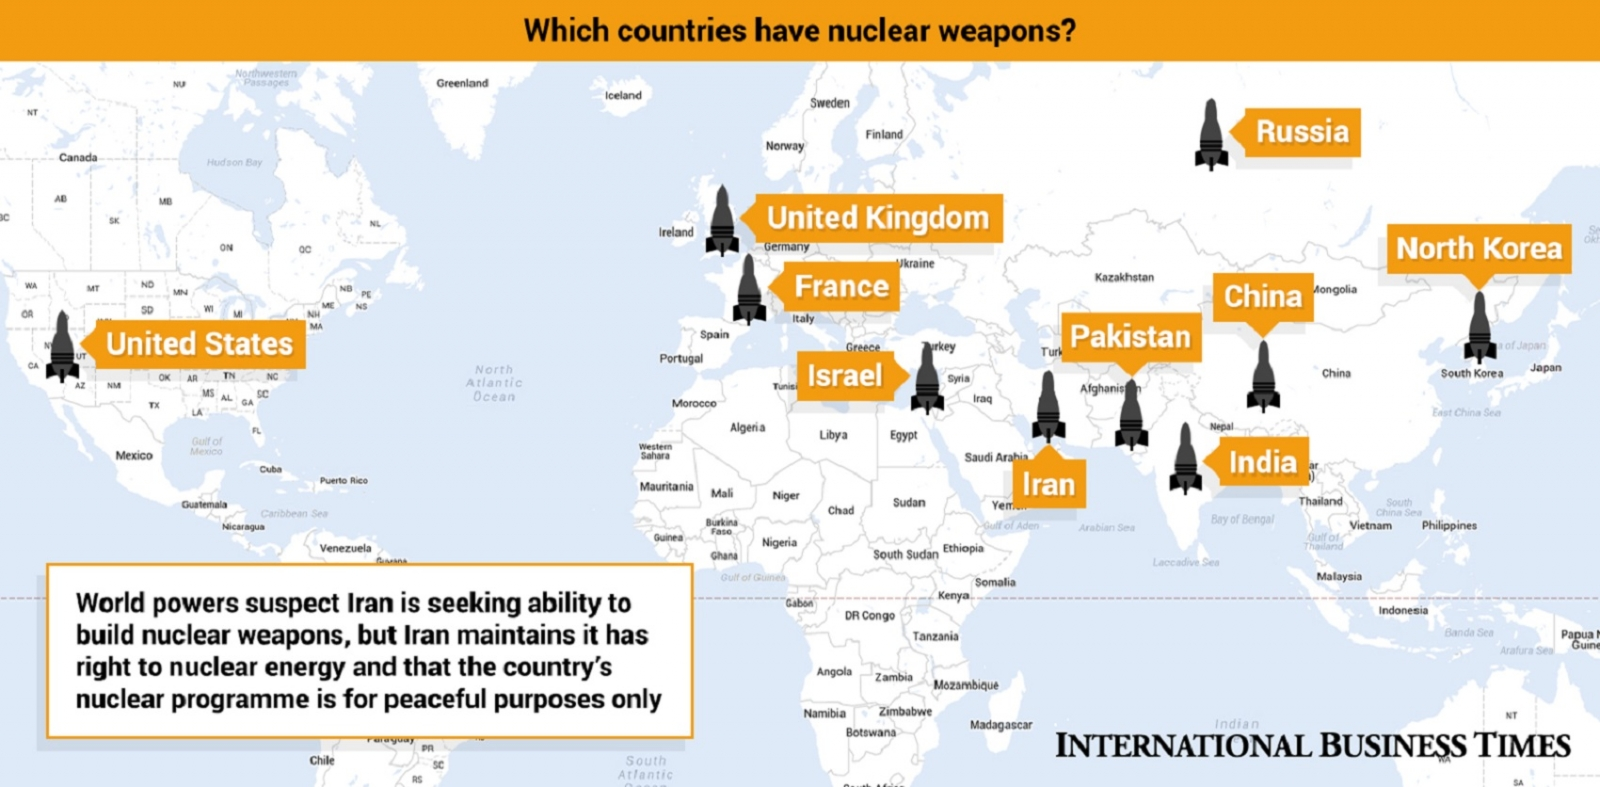 Nuclear weapons countries